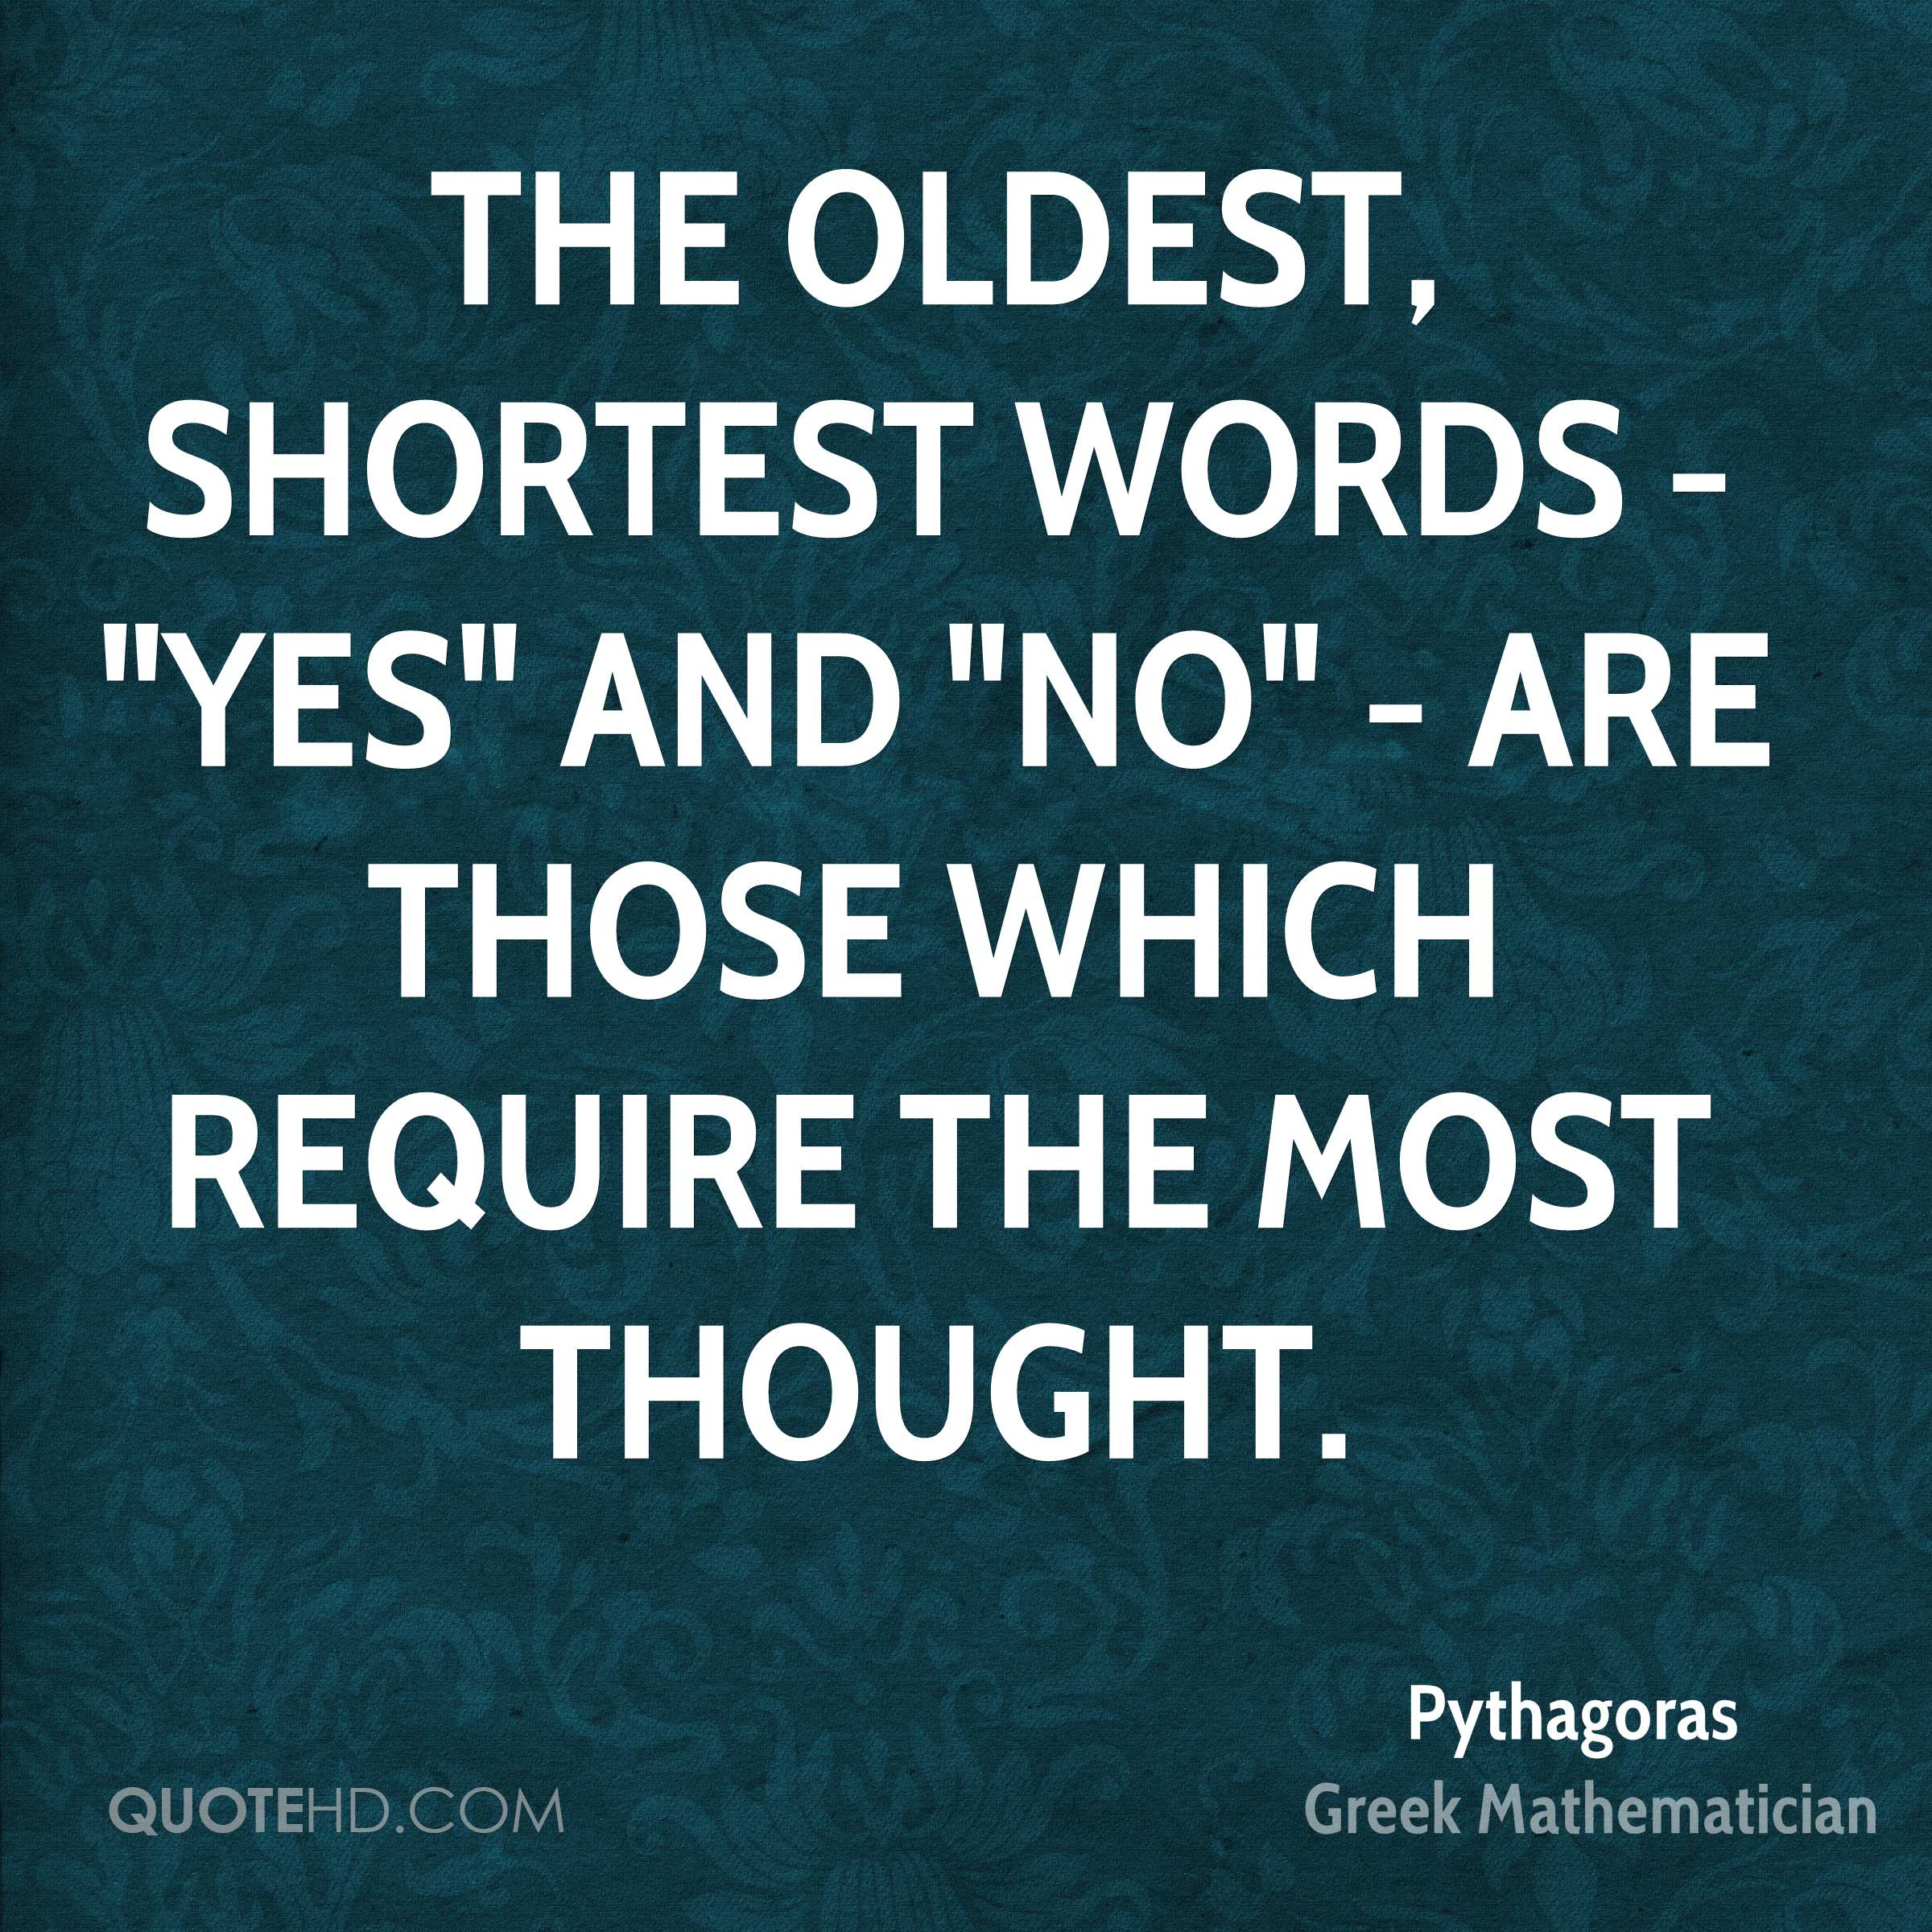 """The oldest, shortest words - """"yes"""" and """"no"""" - are those which require the most thought."""